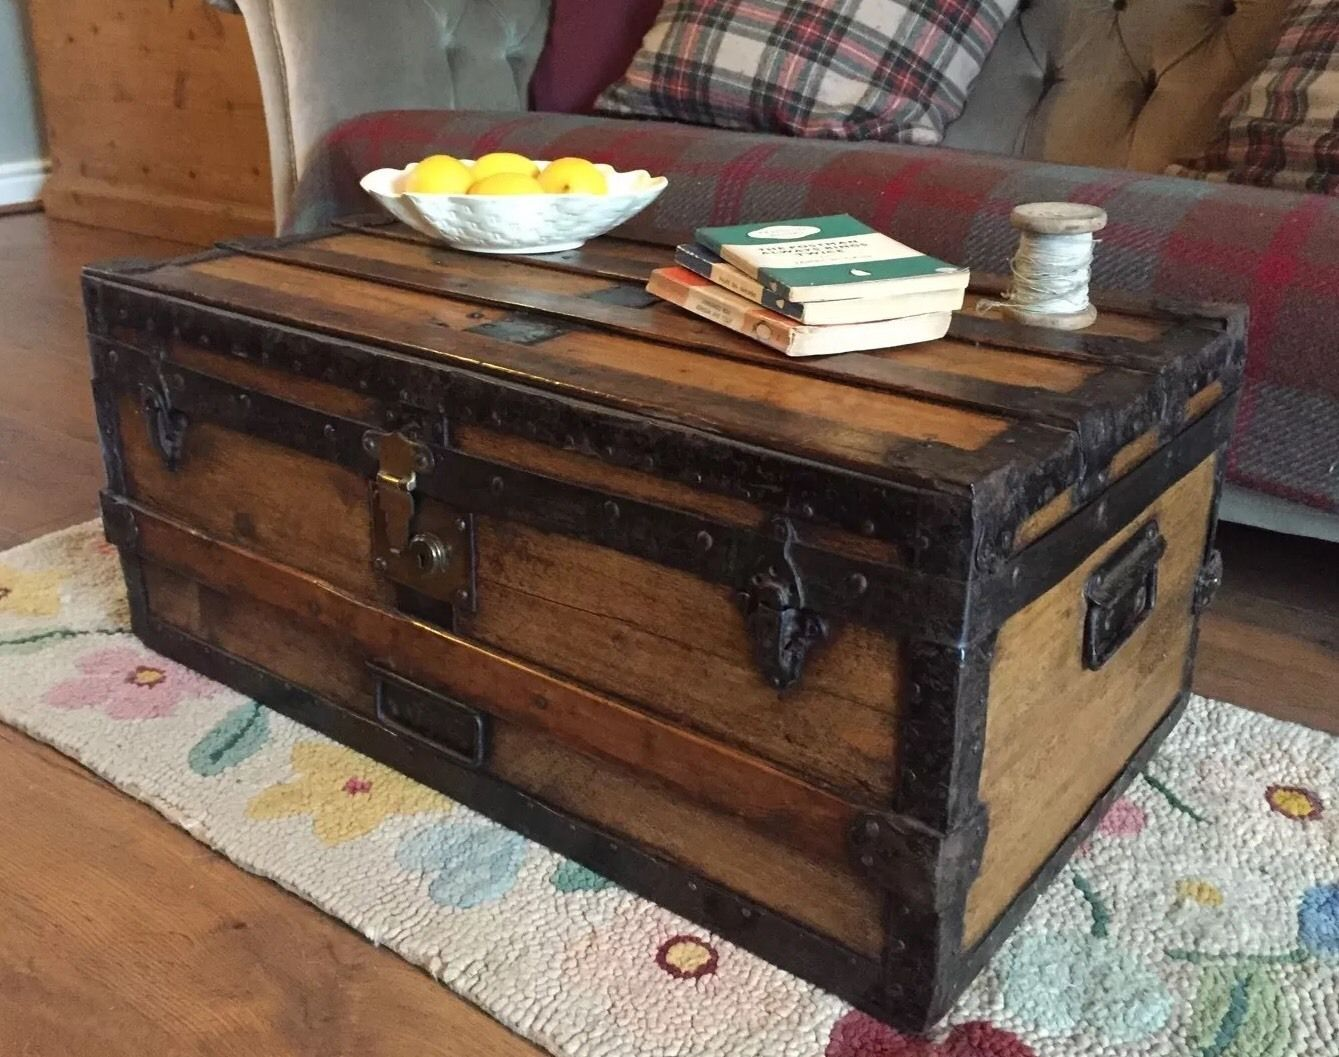 Antique steamer trunk blanket chest coffee table pine travel toy